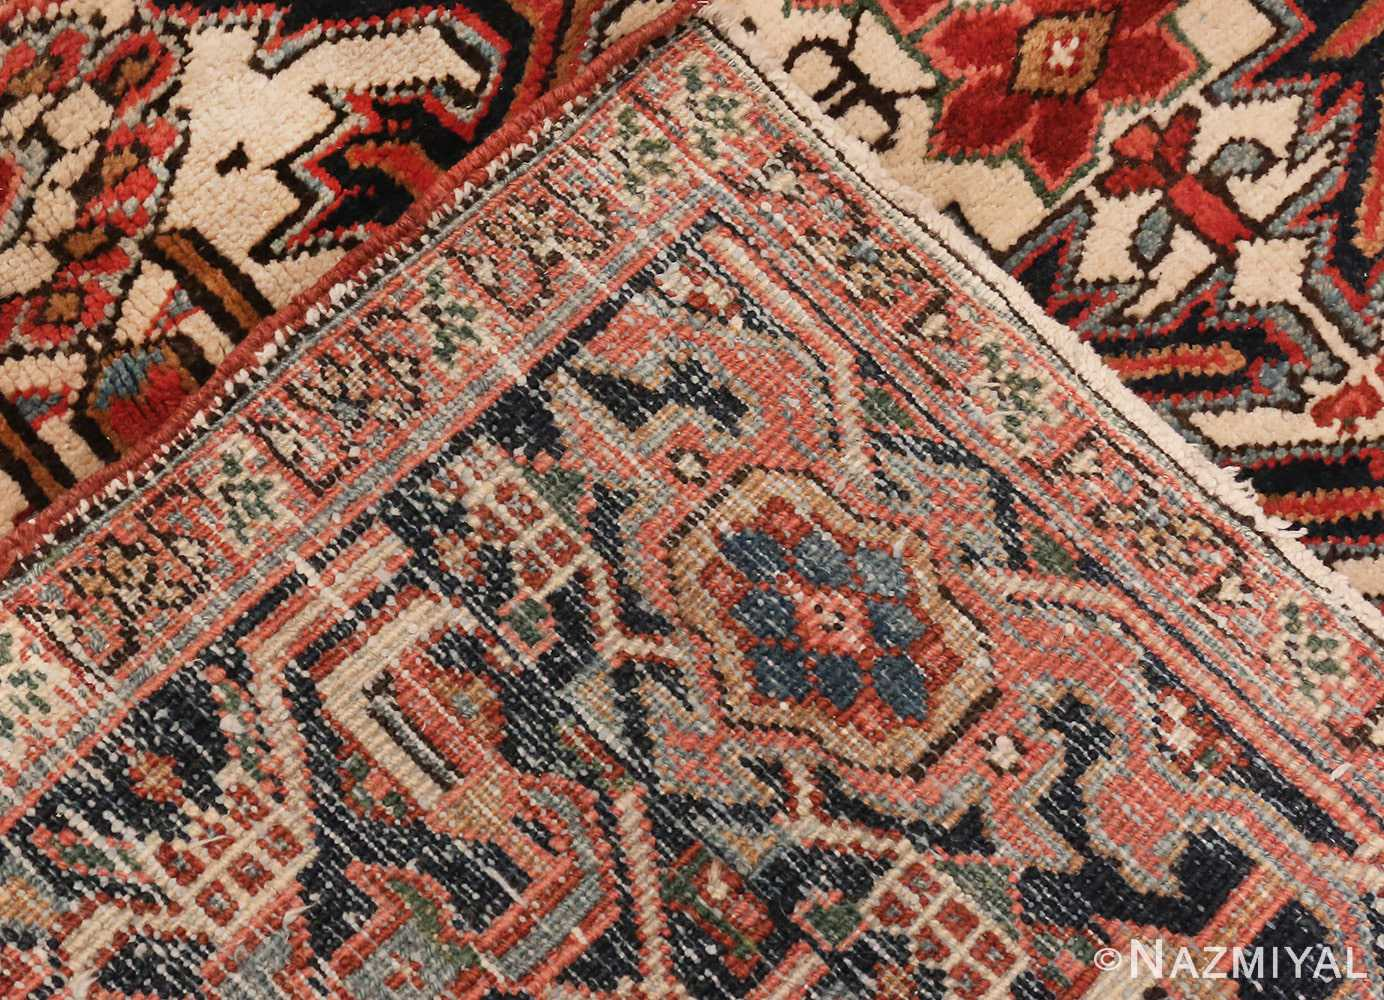 A picture of the weave of Antique Persian Heriz rug #47160 from Nazmiyal Antique Rugs in NYC